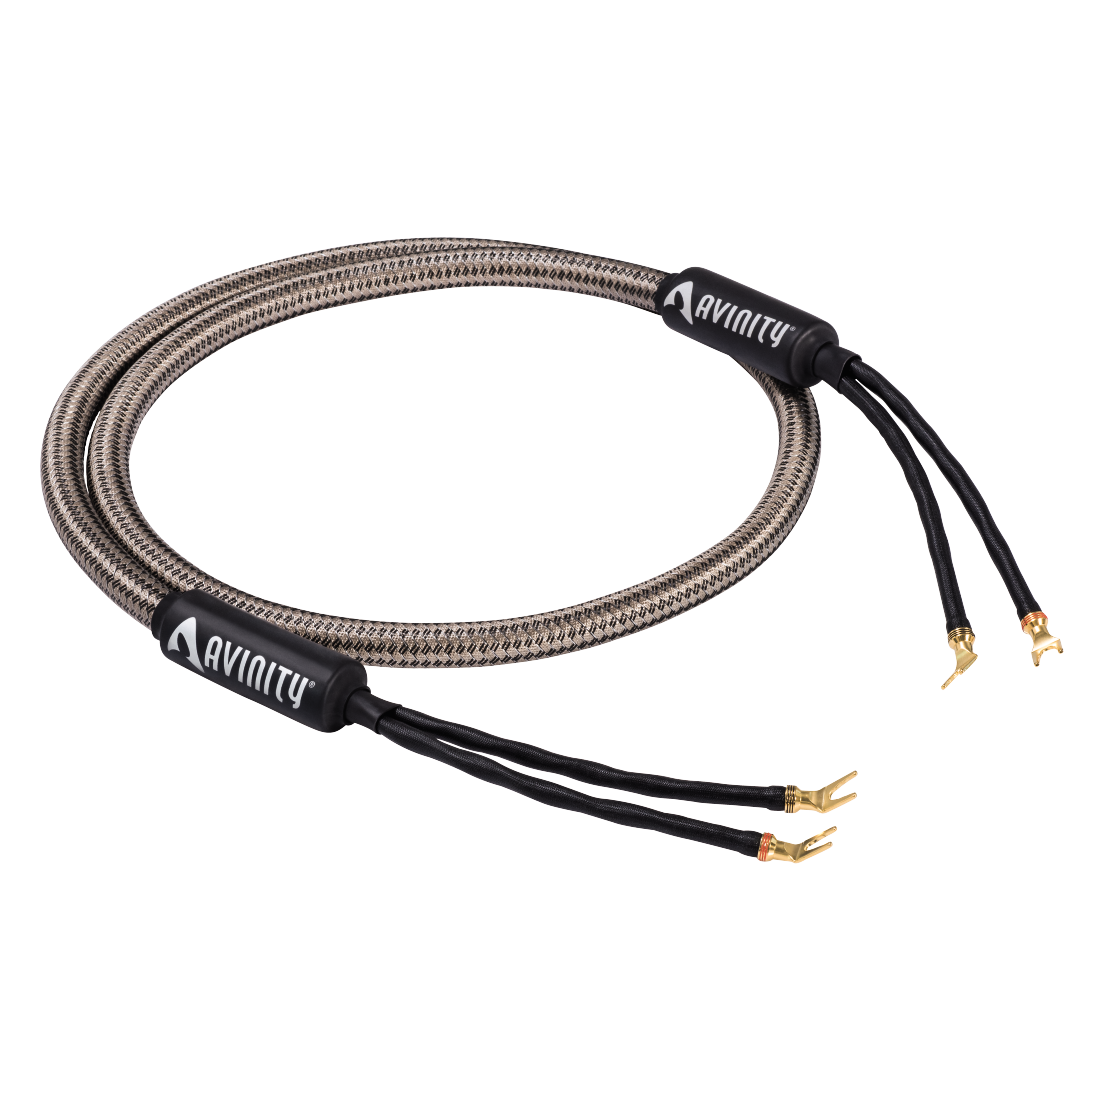 abx High-Res Image - Avinity, LR-269 Loudspeaker Cable, prefabricated 5 m, 2 x 6.00 mm²